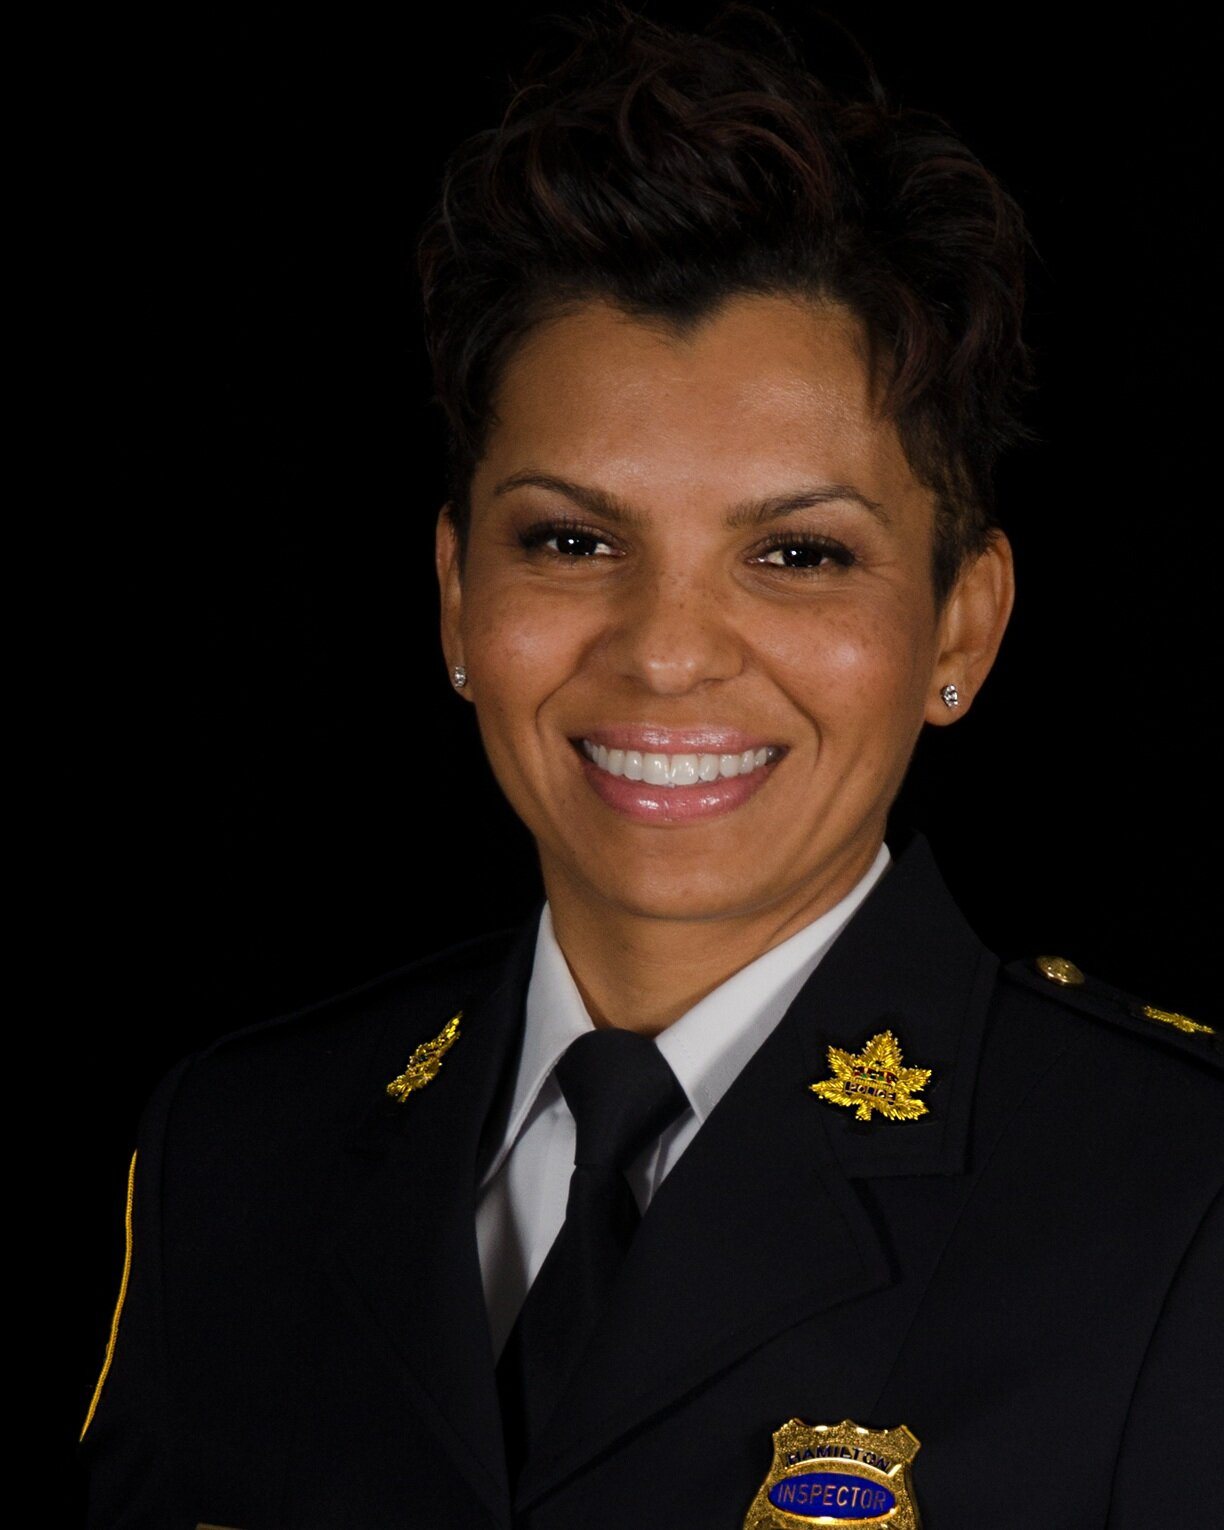 Treena MacSween is Hamilton Police Service's first Black female Superintendent